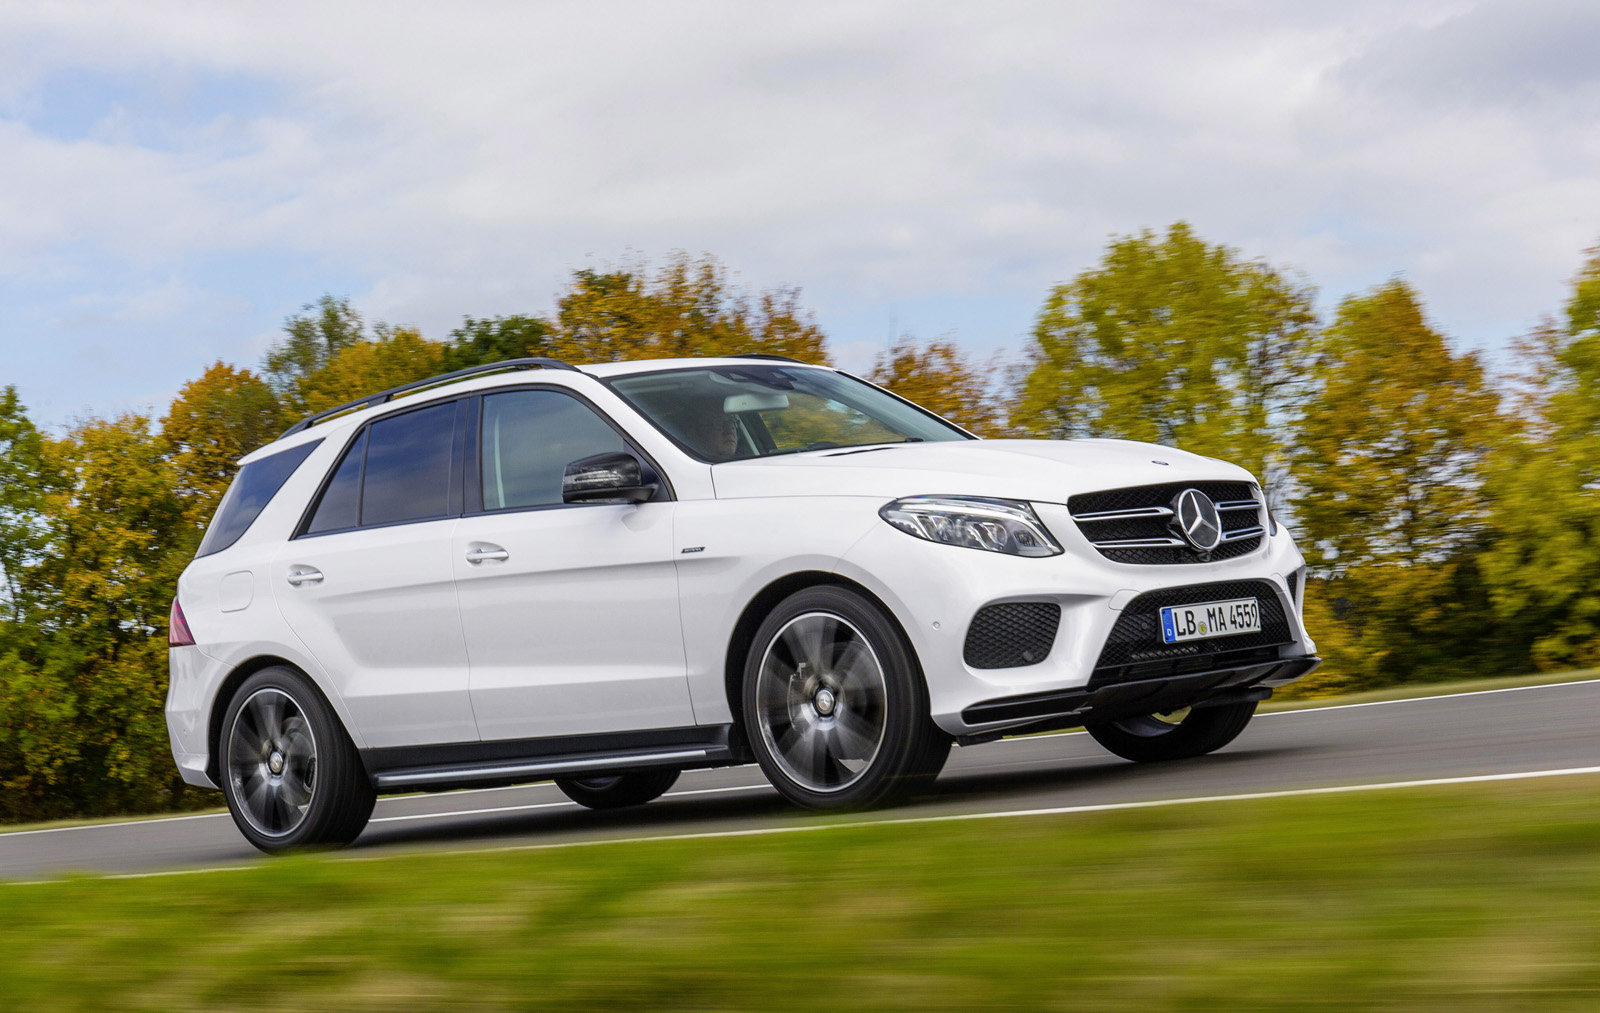 2016 mercedes benz gle 450 amg 4matic suv makes debut for Mercedes benze suv